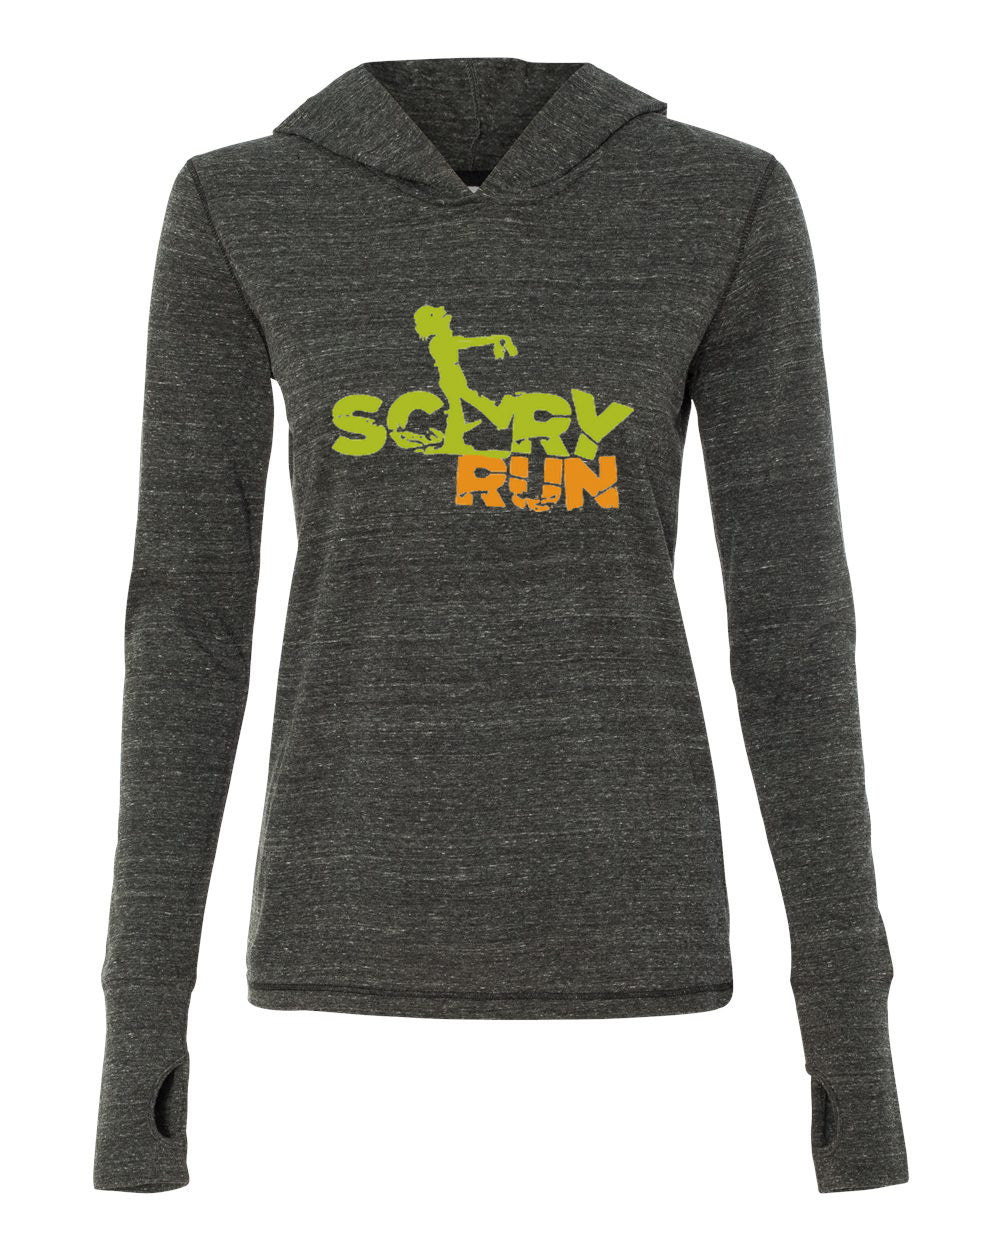 Women's Performance Long Sleeve Hooded Pullover Shirt - Scary Run